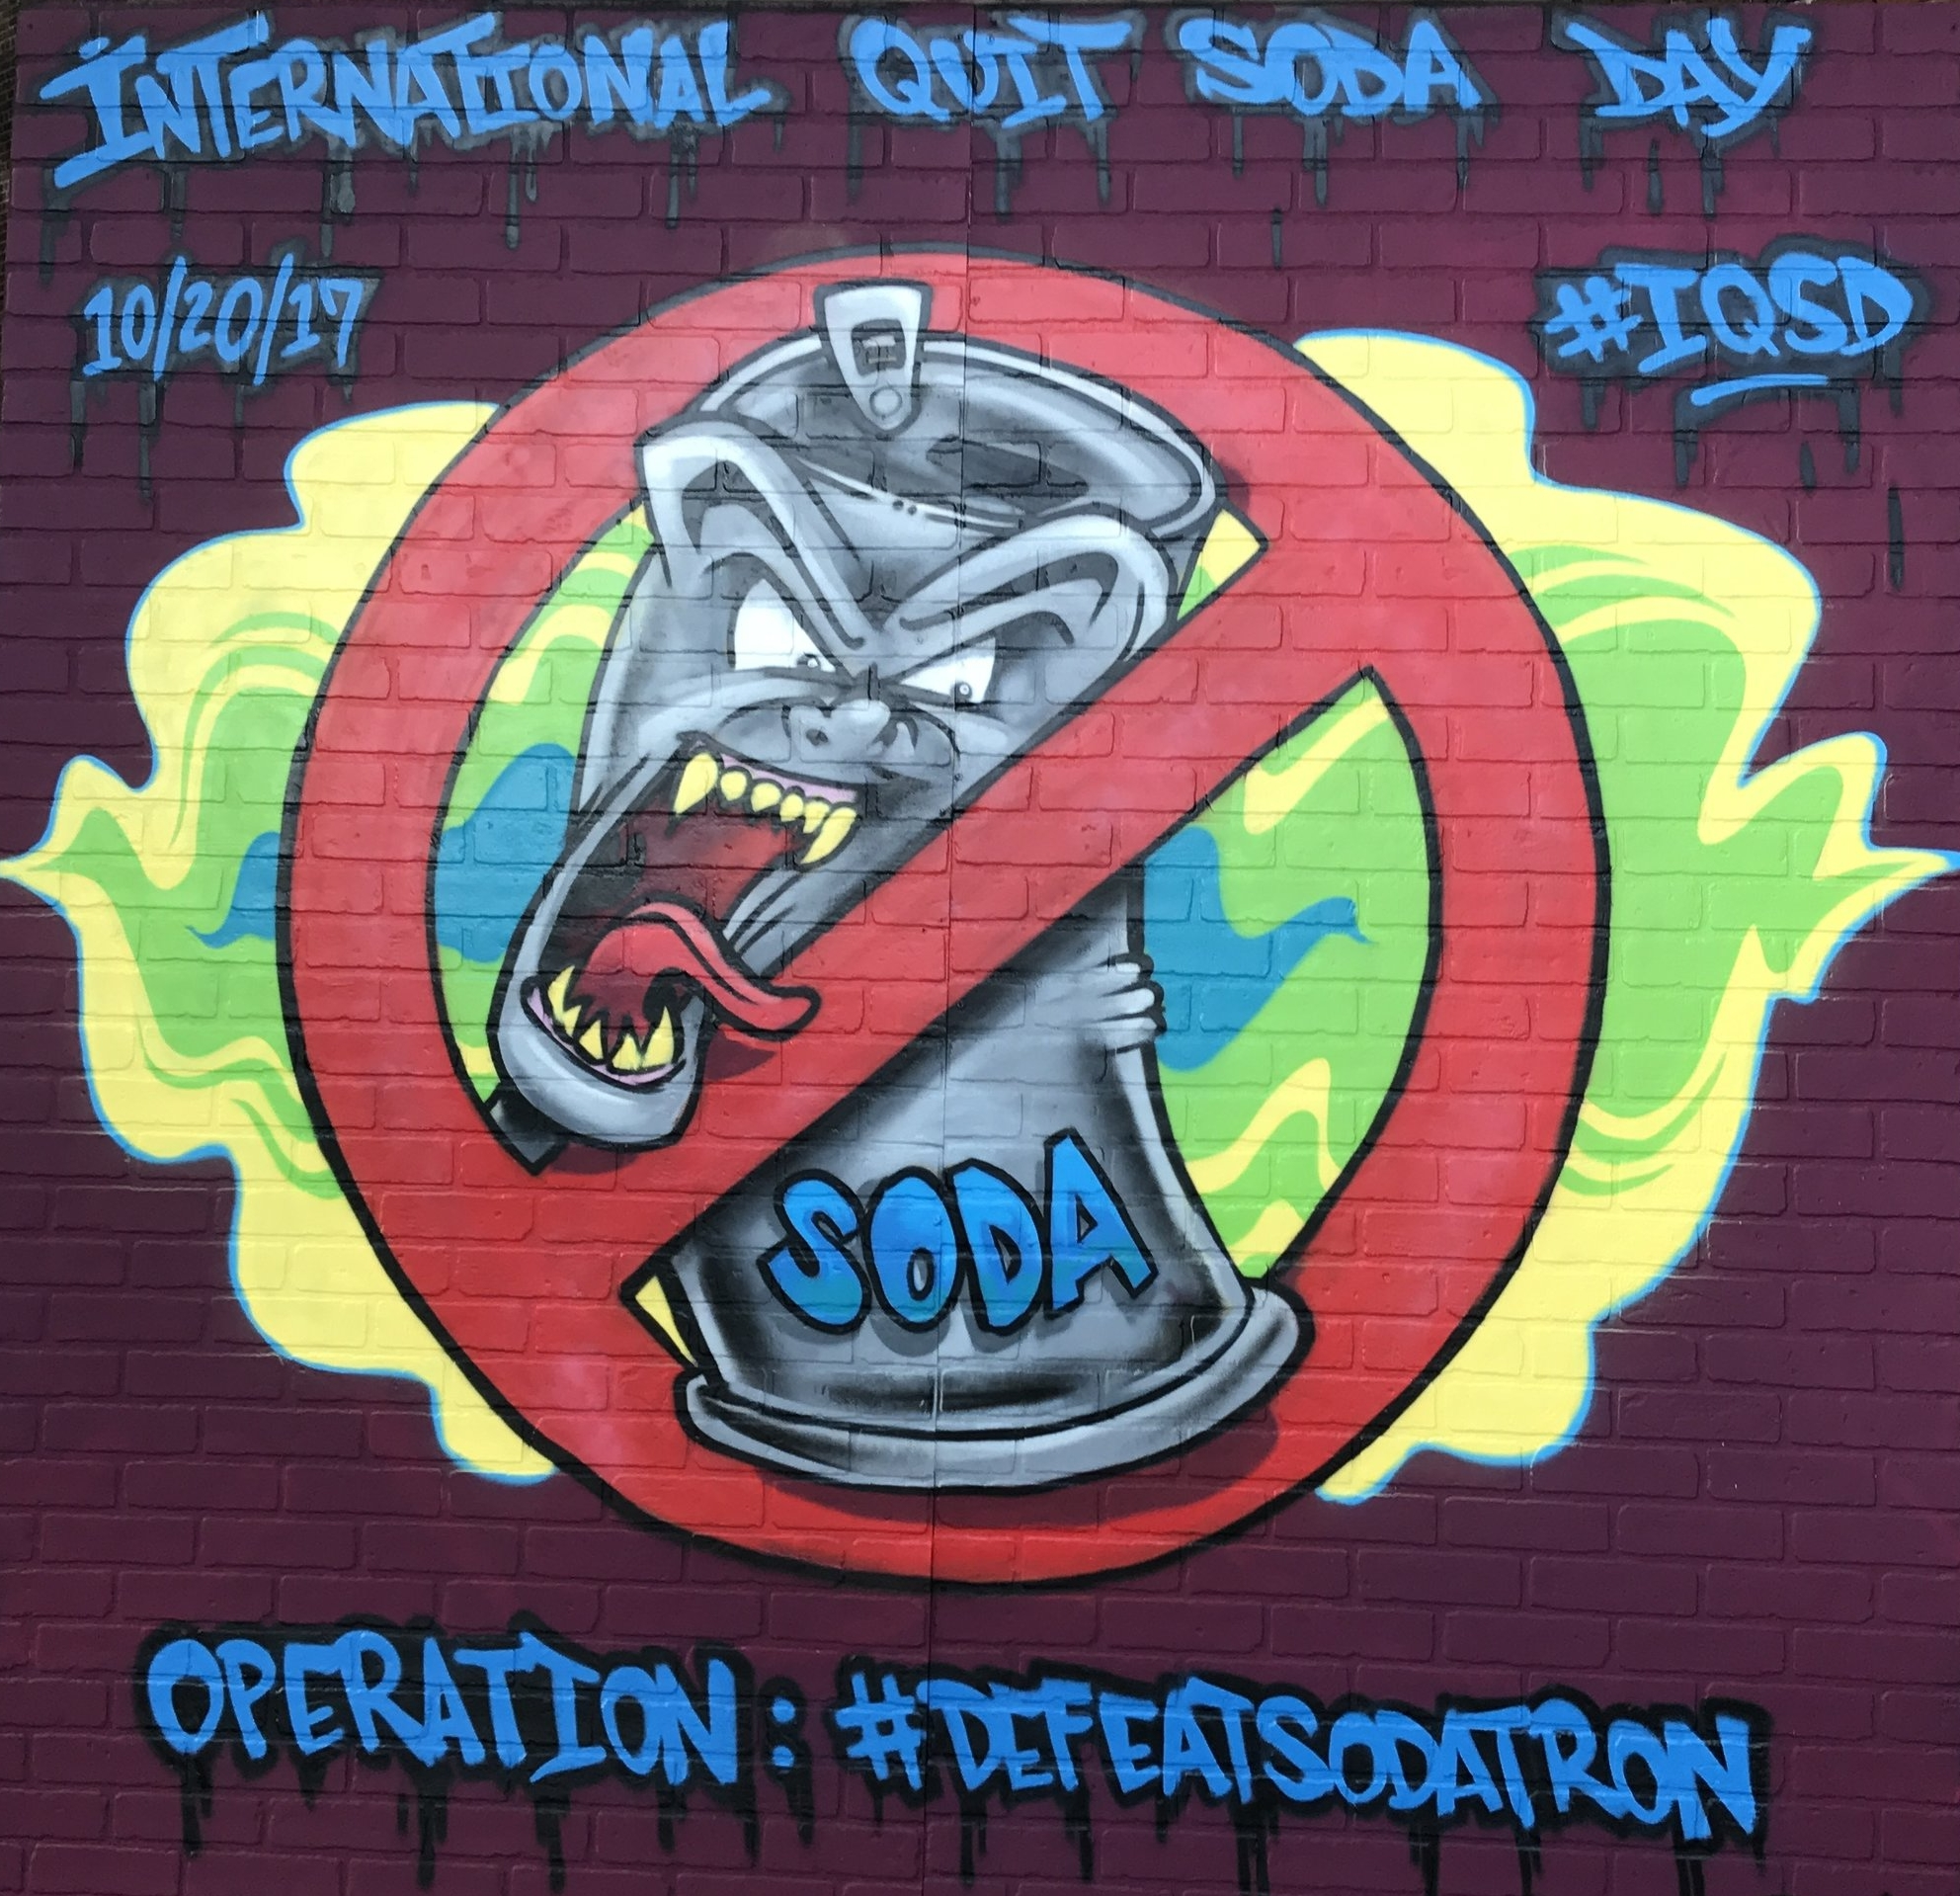 Inaugural International Quit Soda Day mural by Mike Rich of Portland, Maine, 2017